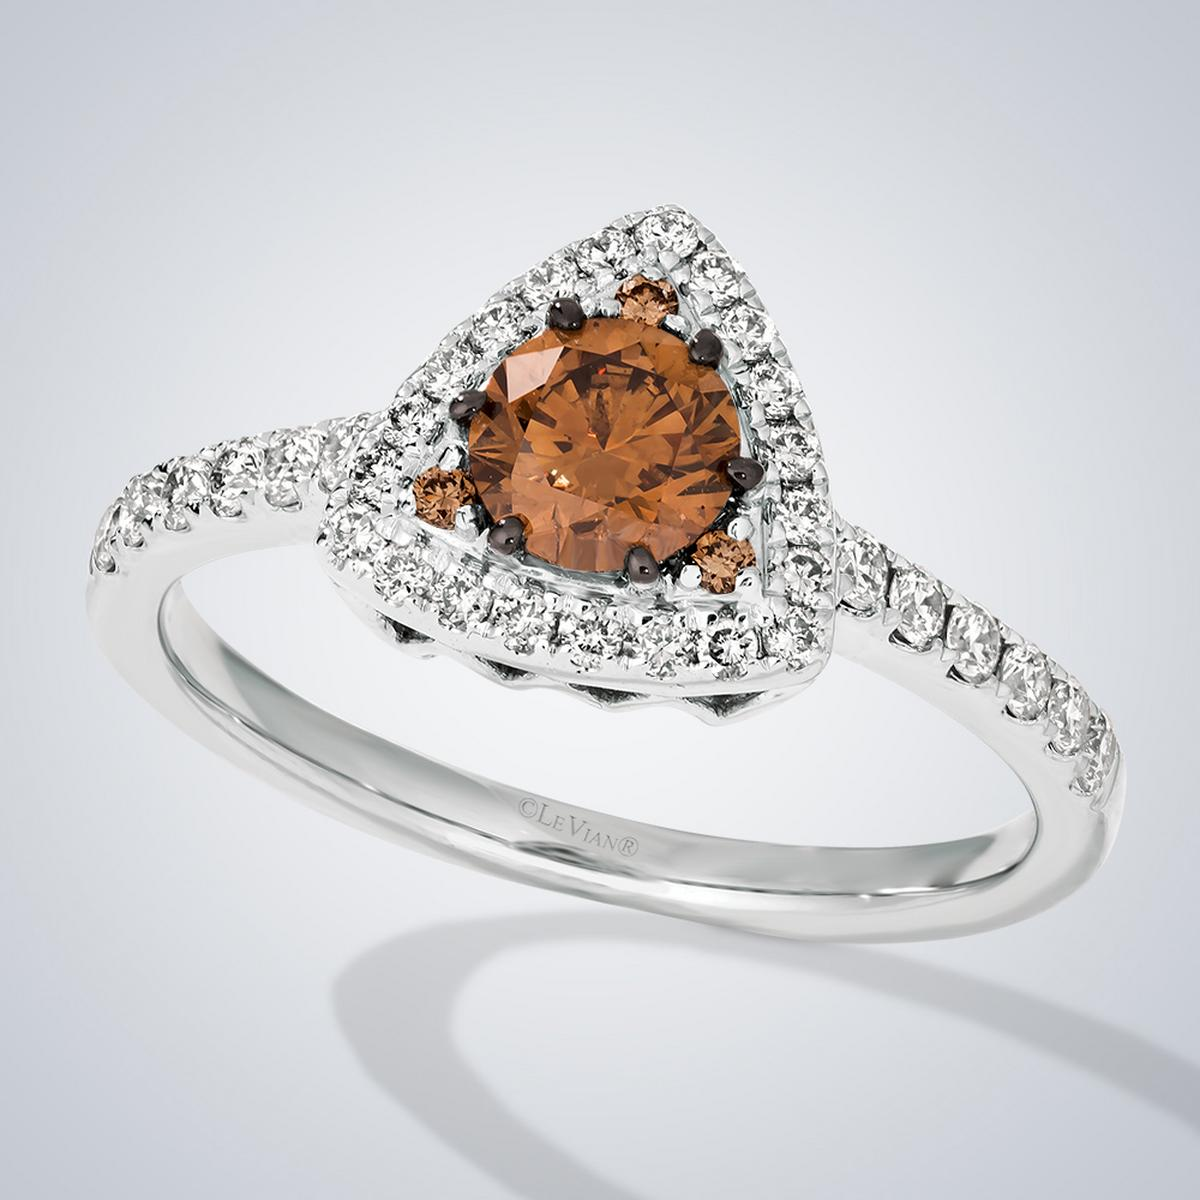 Choclate and Silver Le Vian ring on White background